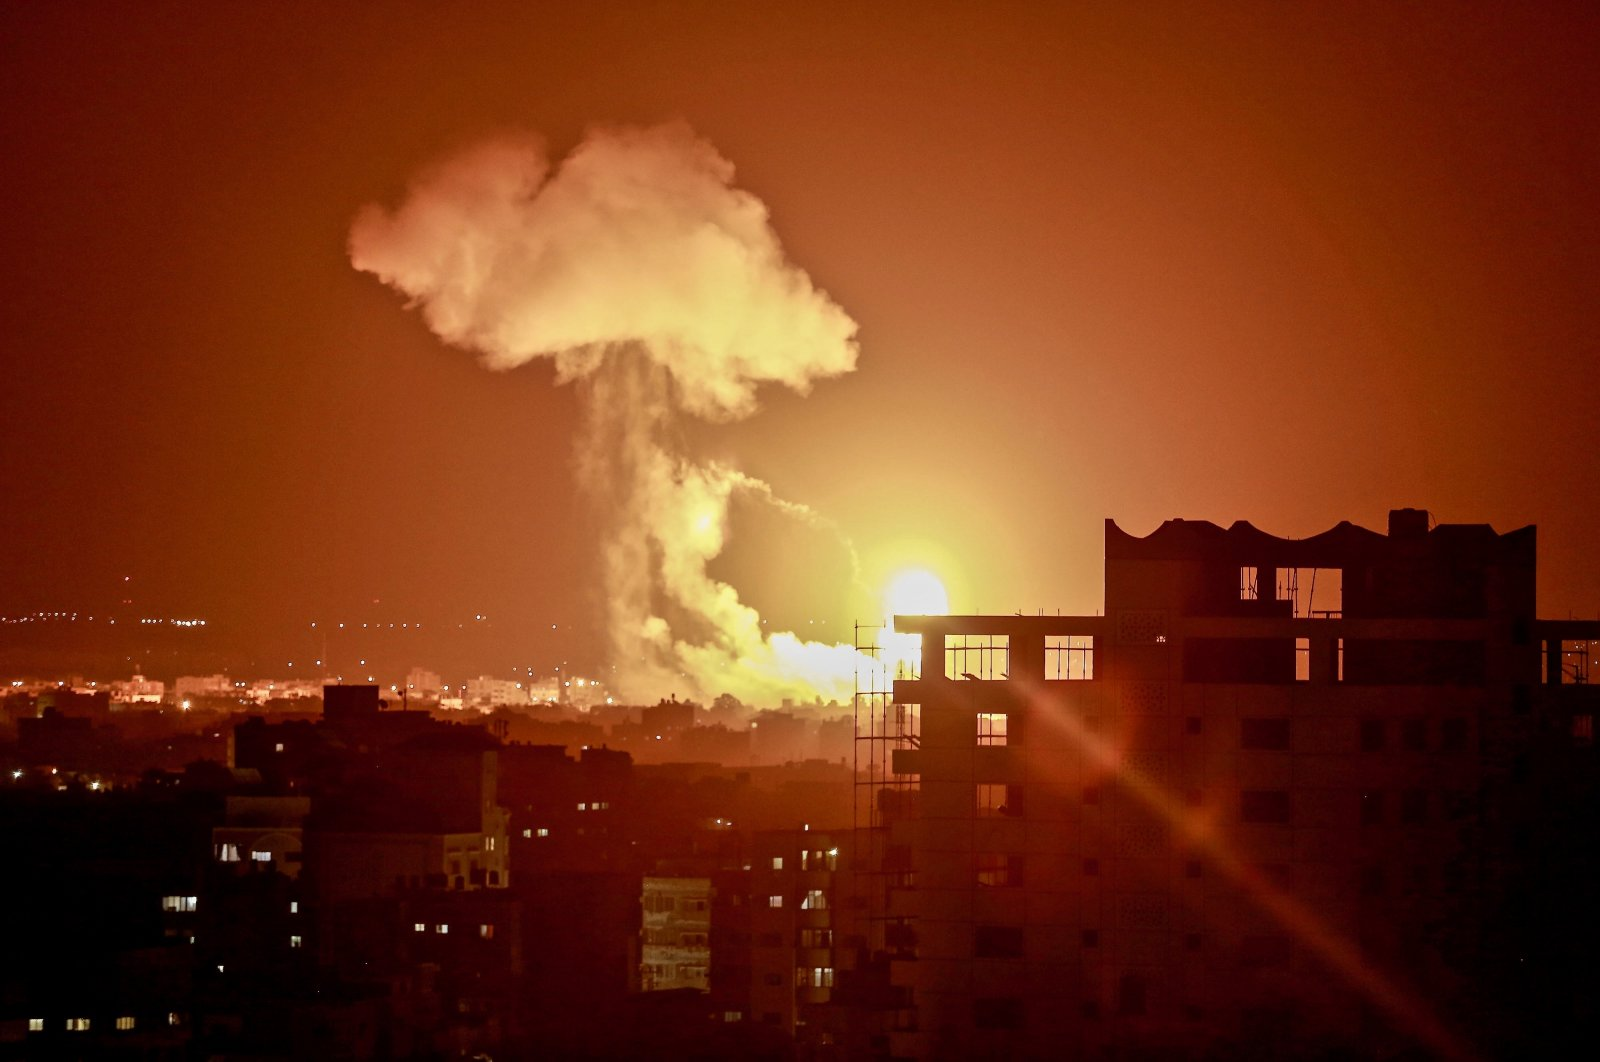 An explosion goes off during an Israeli airstrike in the Gaza Strip, Palestine, Aug. 18, 2020. (Photo by Getty Images)